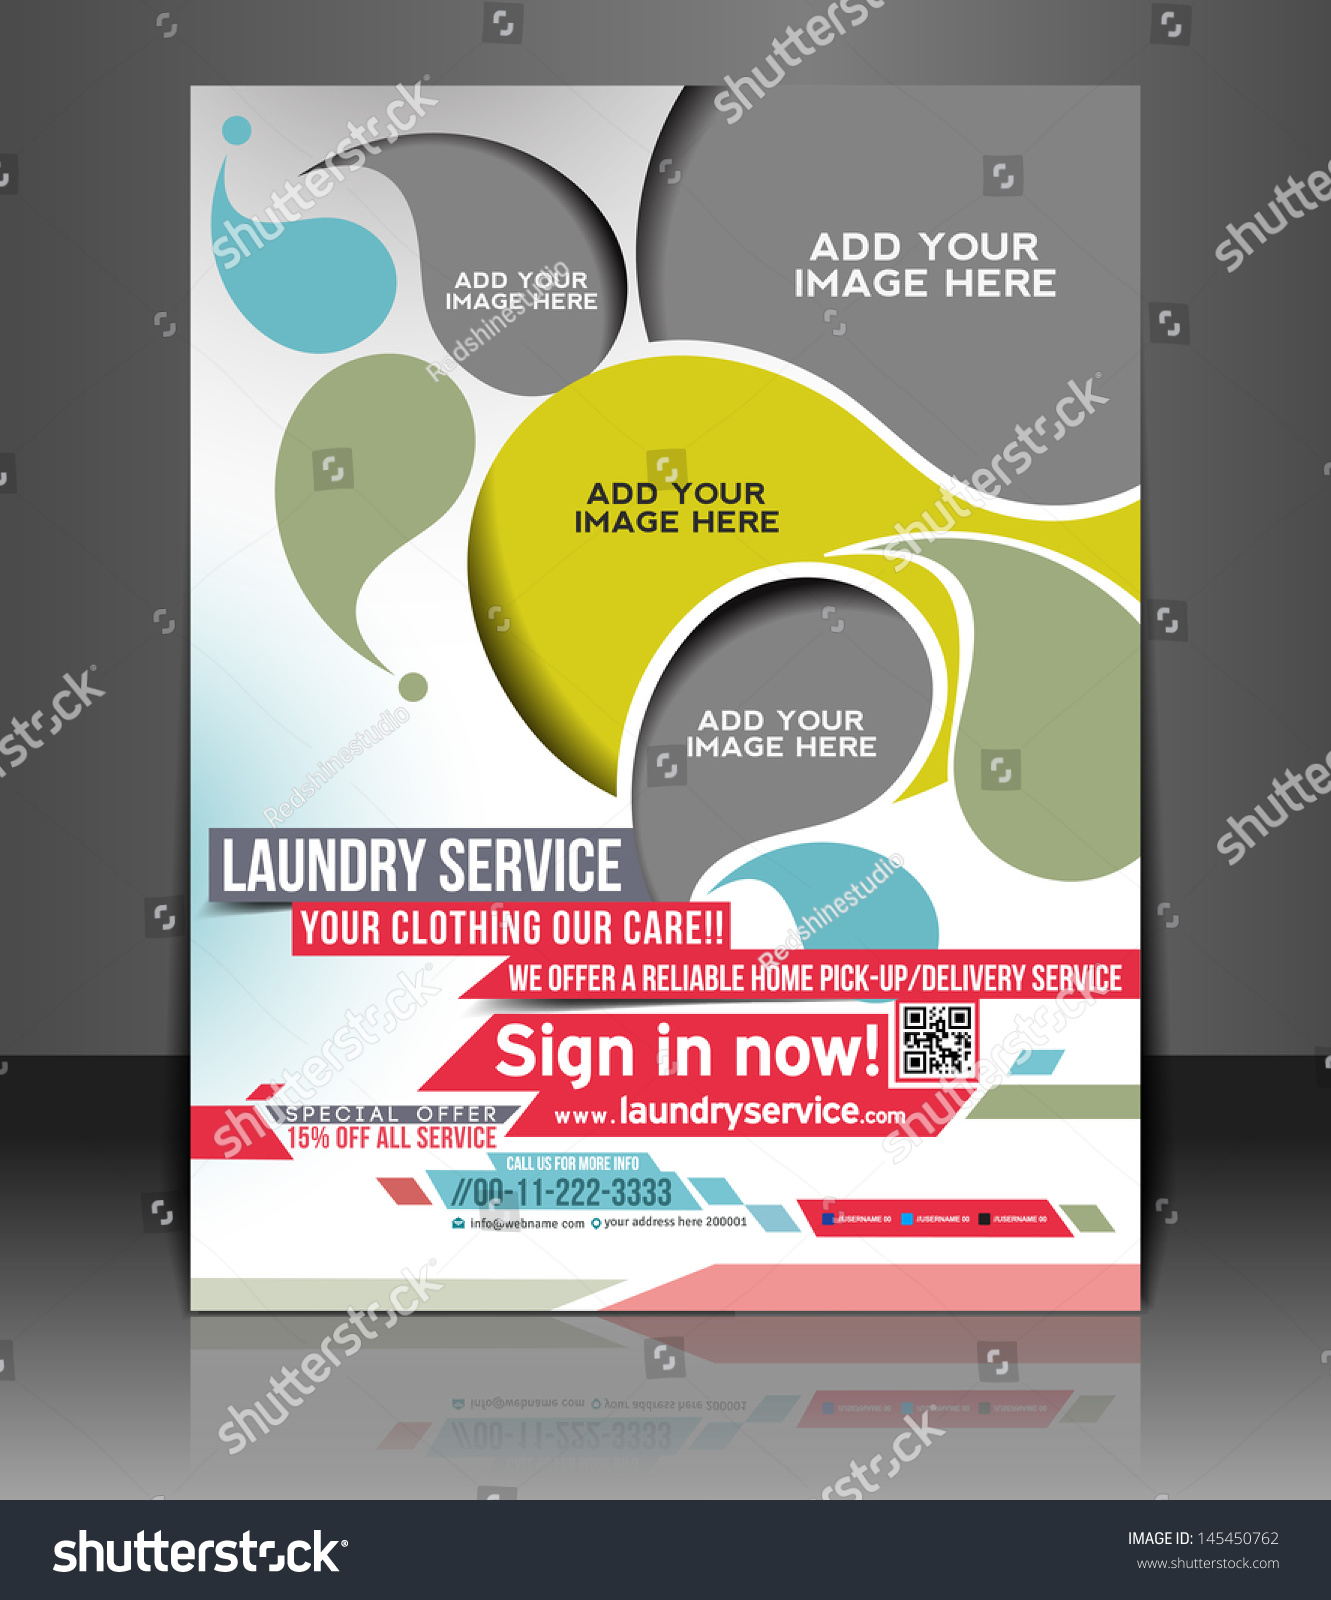 laundry flyers templates - vector laundry service flyer magazine cover poster